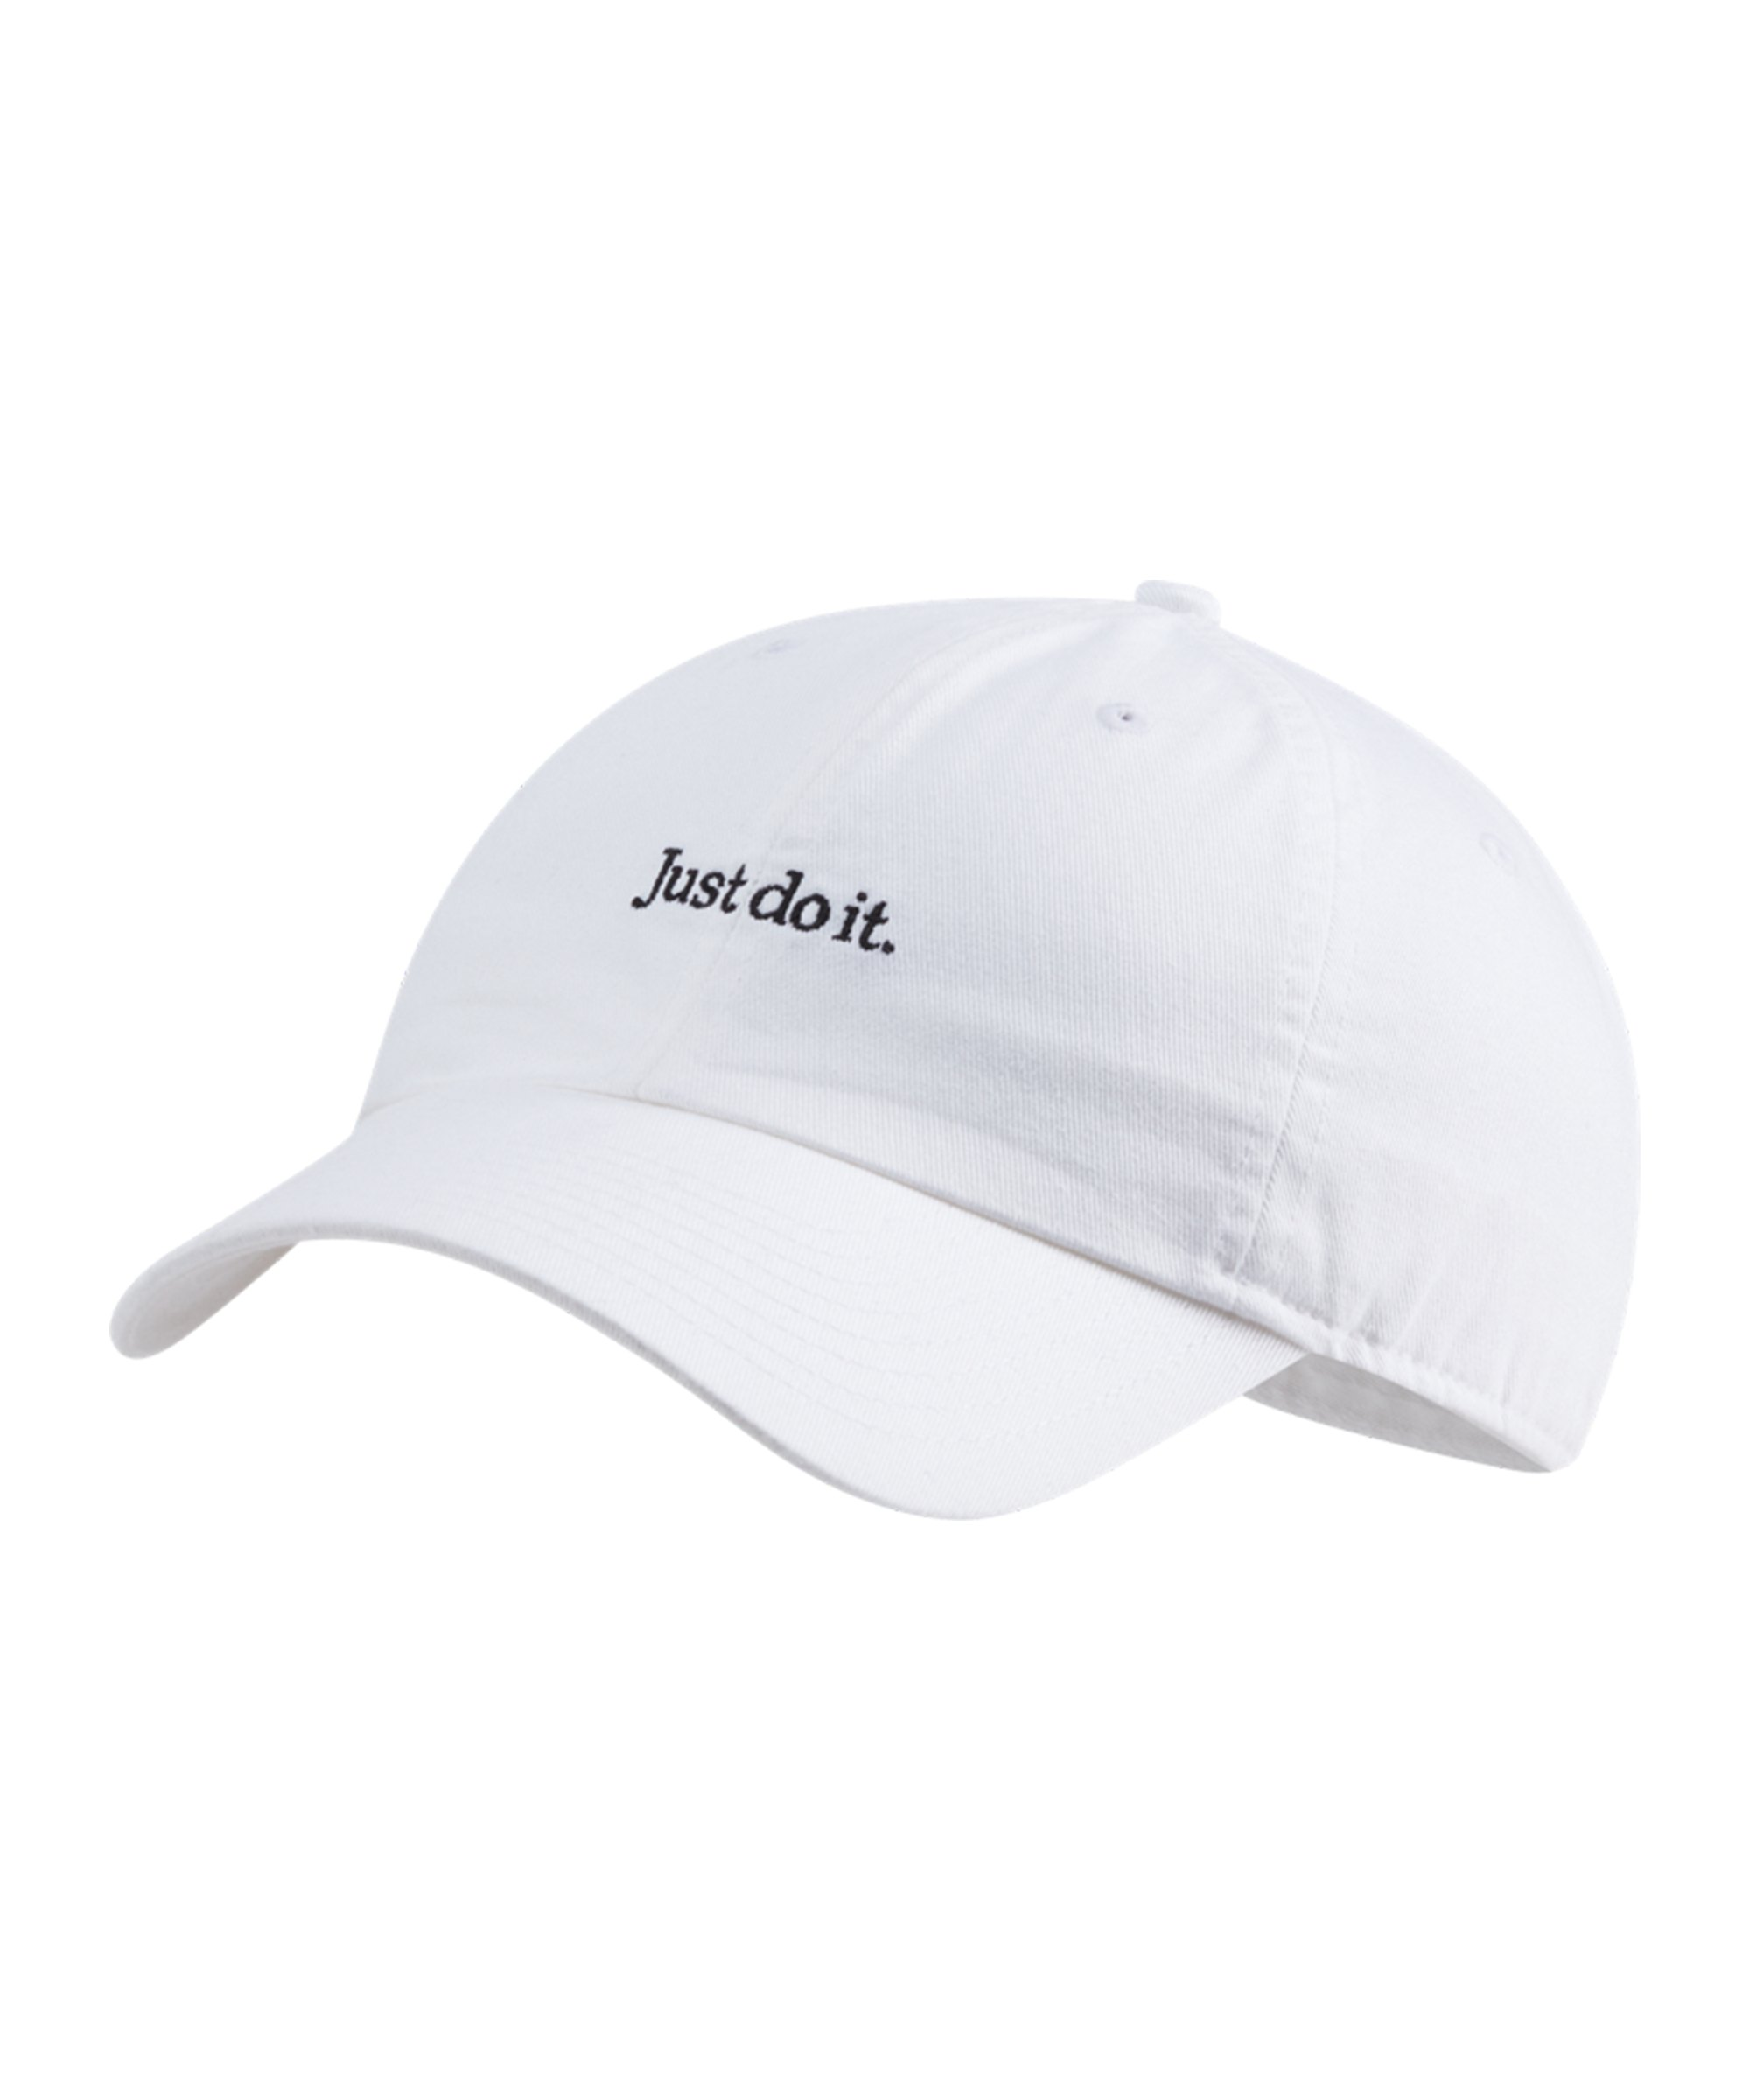 Nike Heritage 86 Just Do It Cap Weiss F100 - weiss